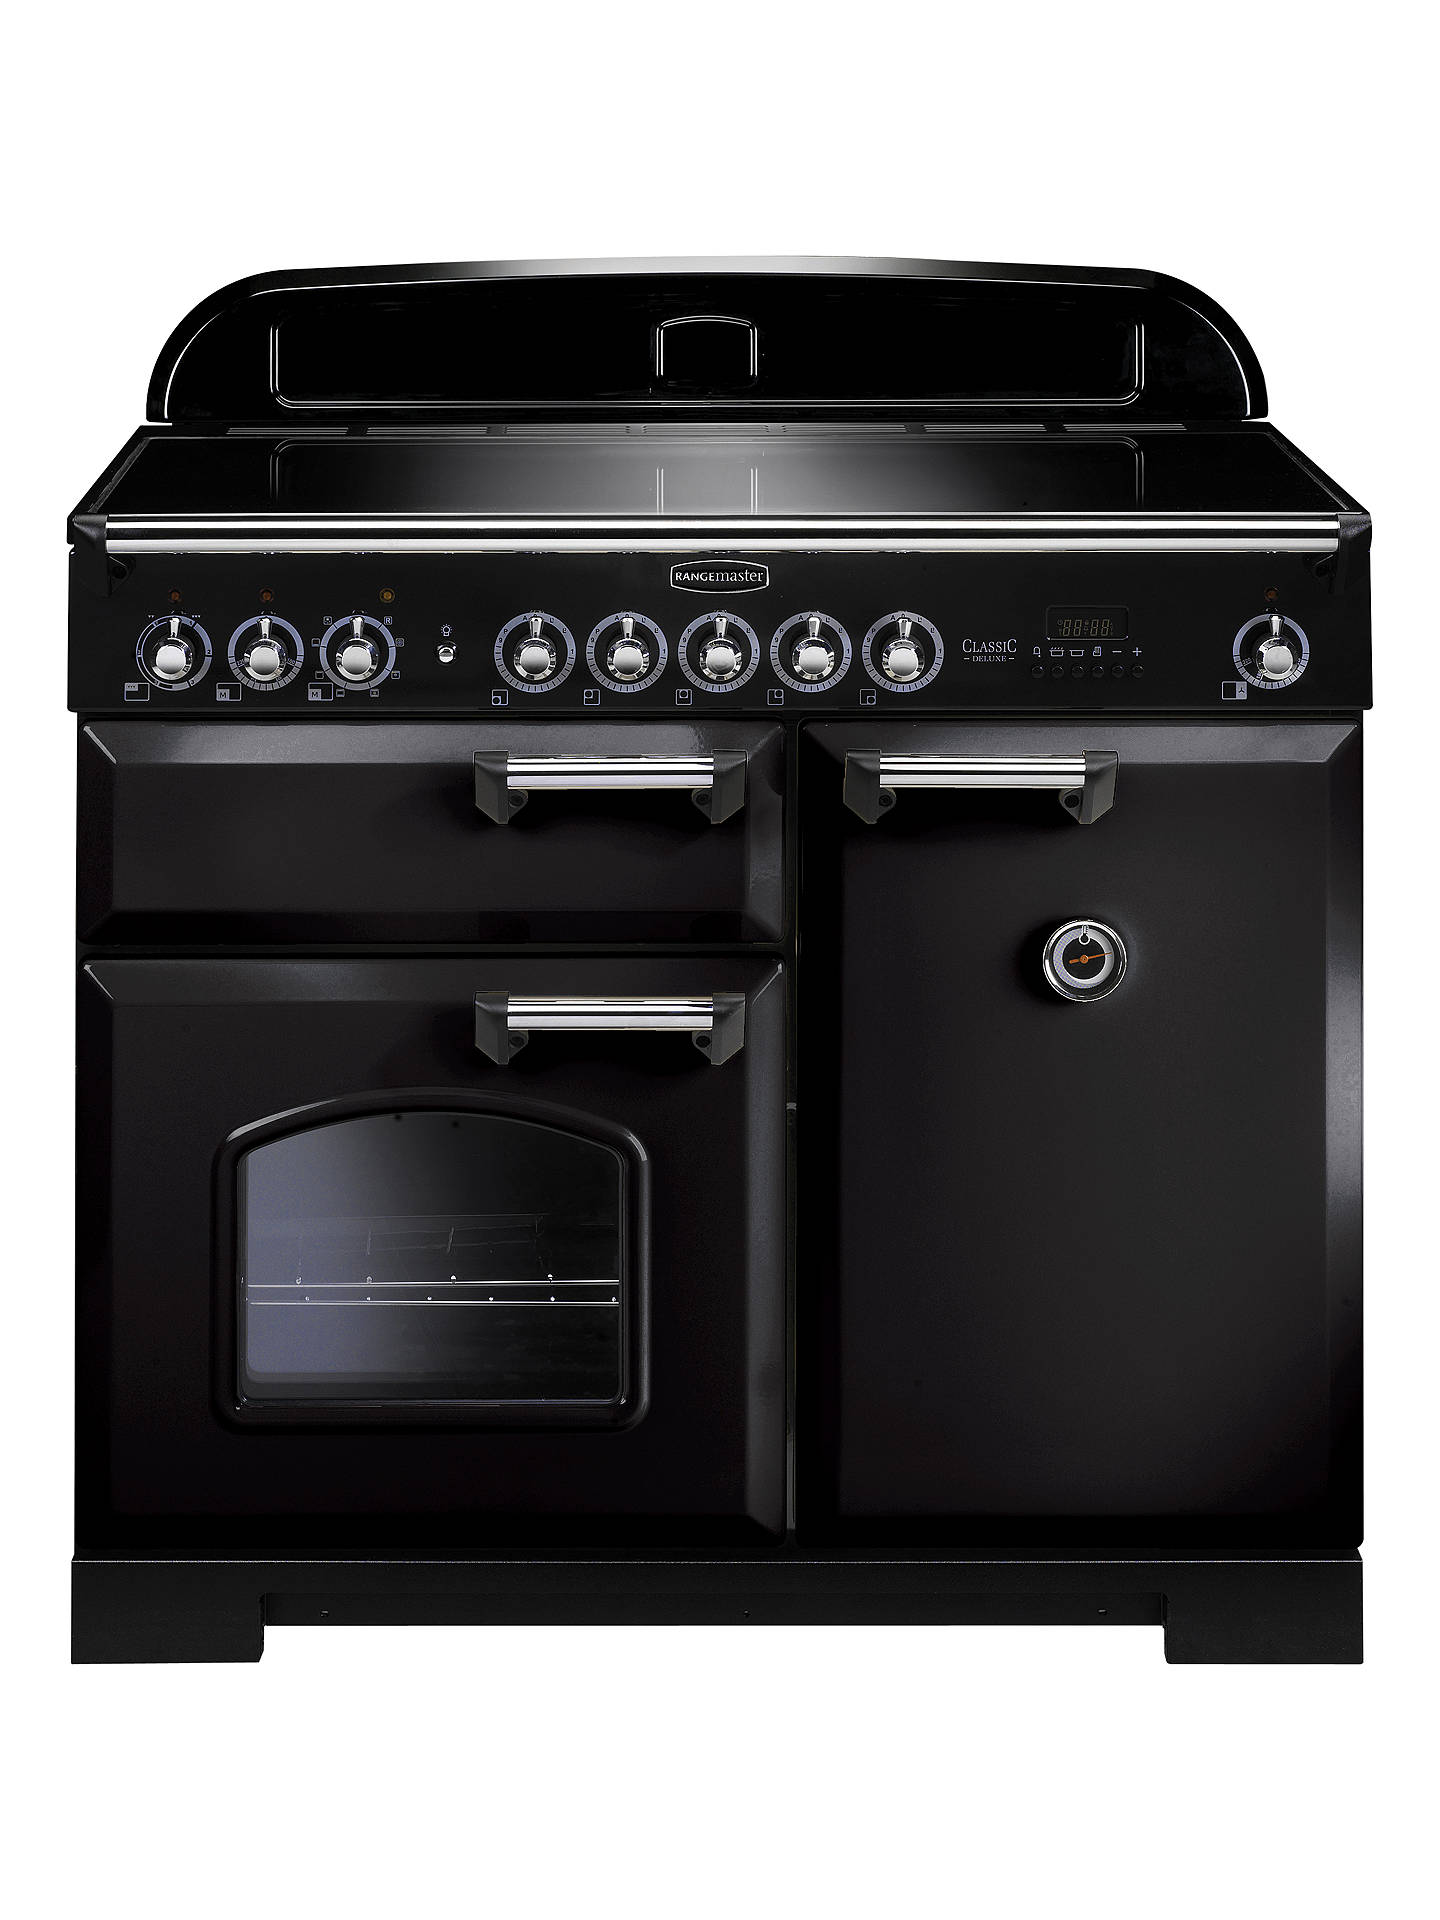 BuyRangemaster Classic Deluxe 100 Induction Hob Range Cooker, Black/Chrome Trim Online at johnlewis.com